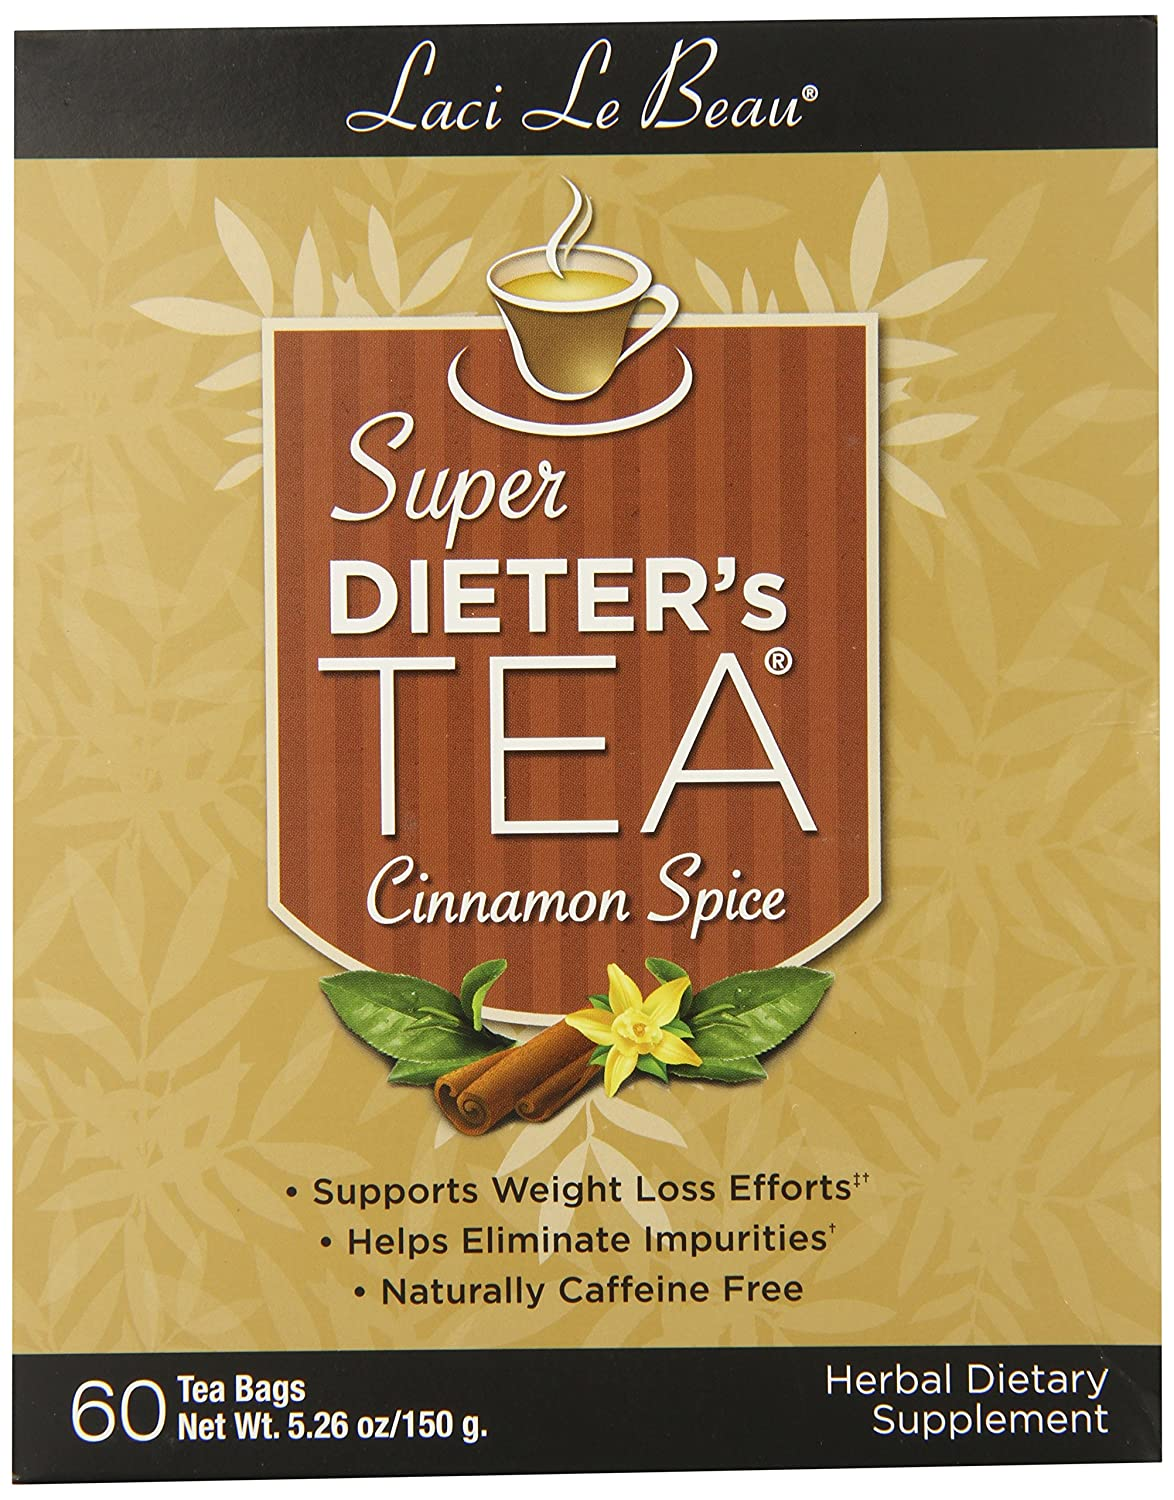 Laci Le Beau Super Dieter's Tea, Cinnamon Spice, 60 Count Box